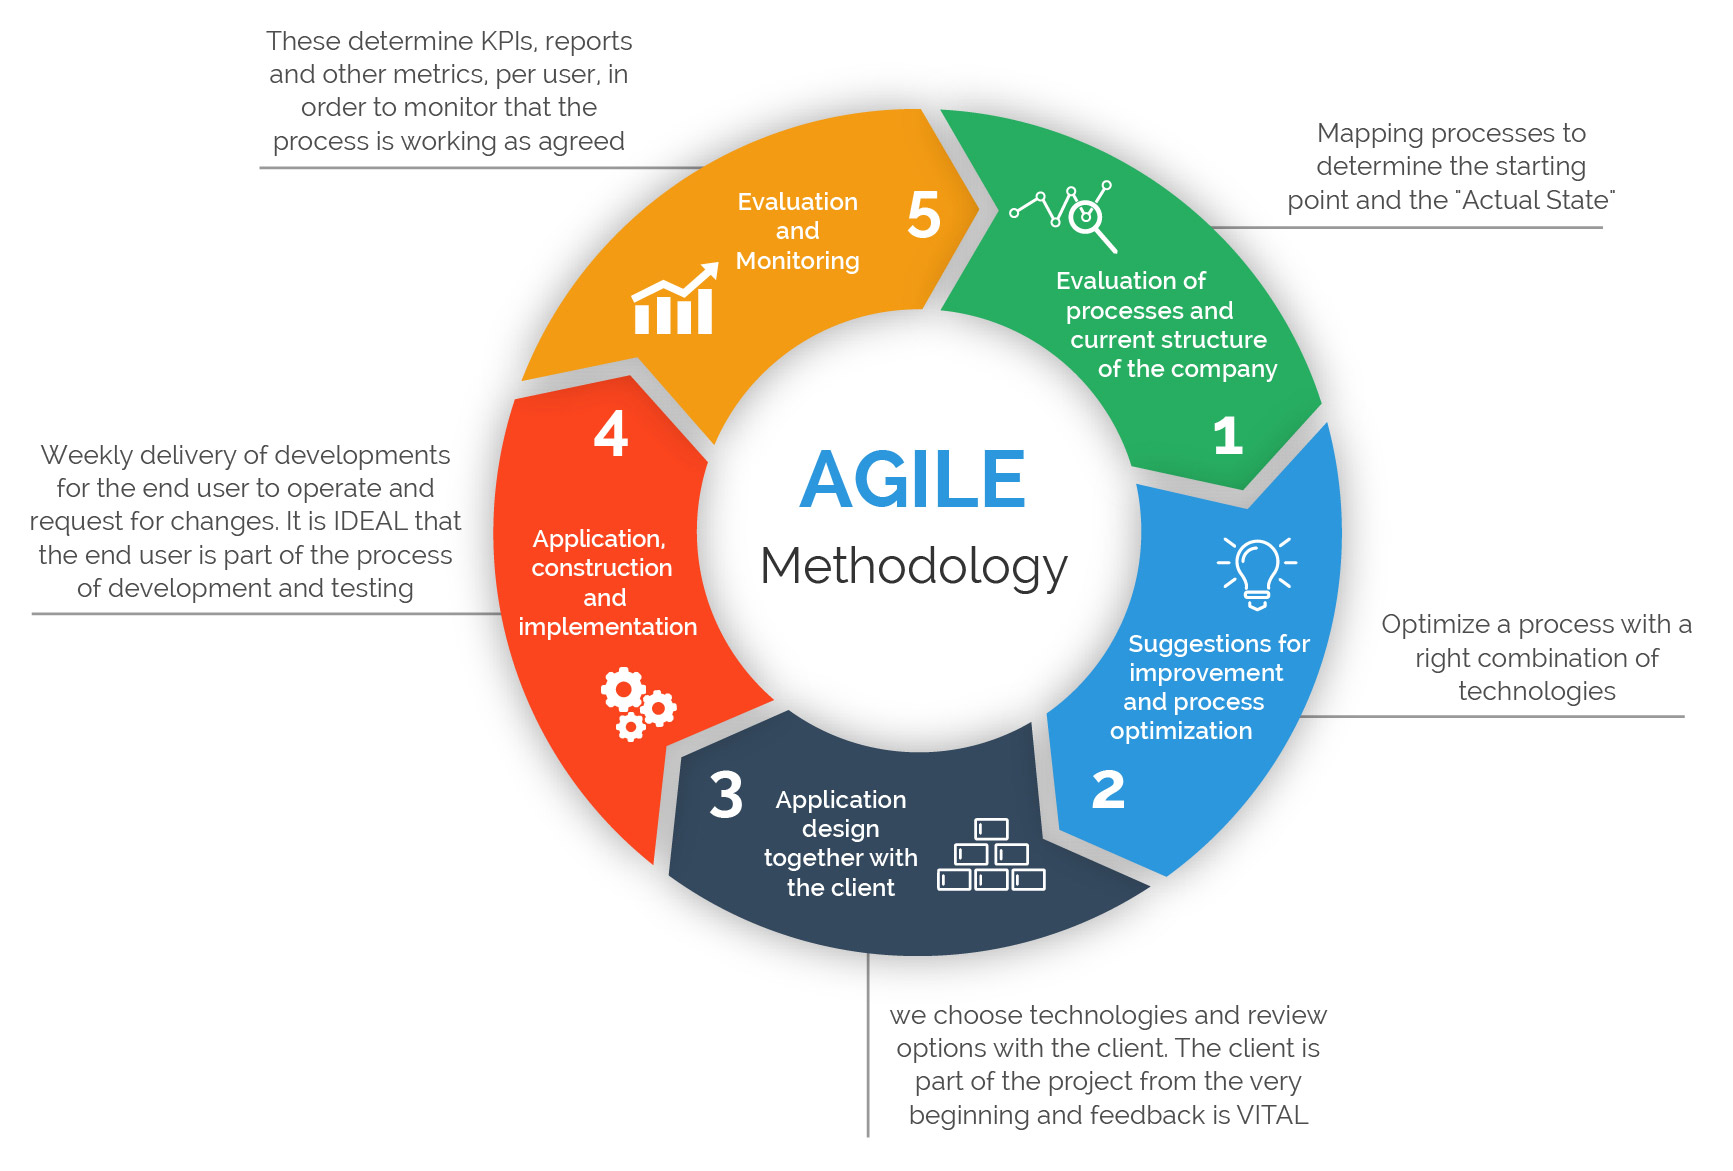 agile development model diagram frog dissection nuptial pad the importance of different methodologies included